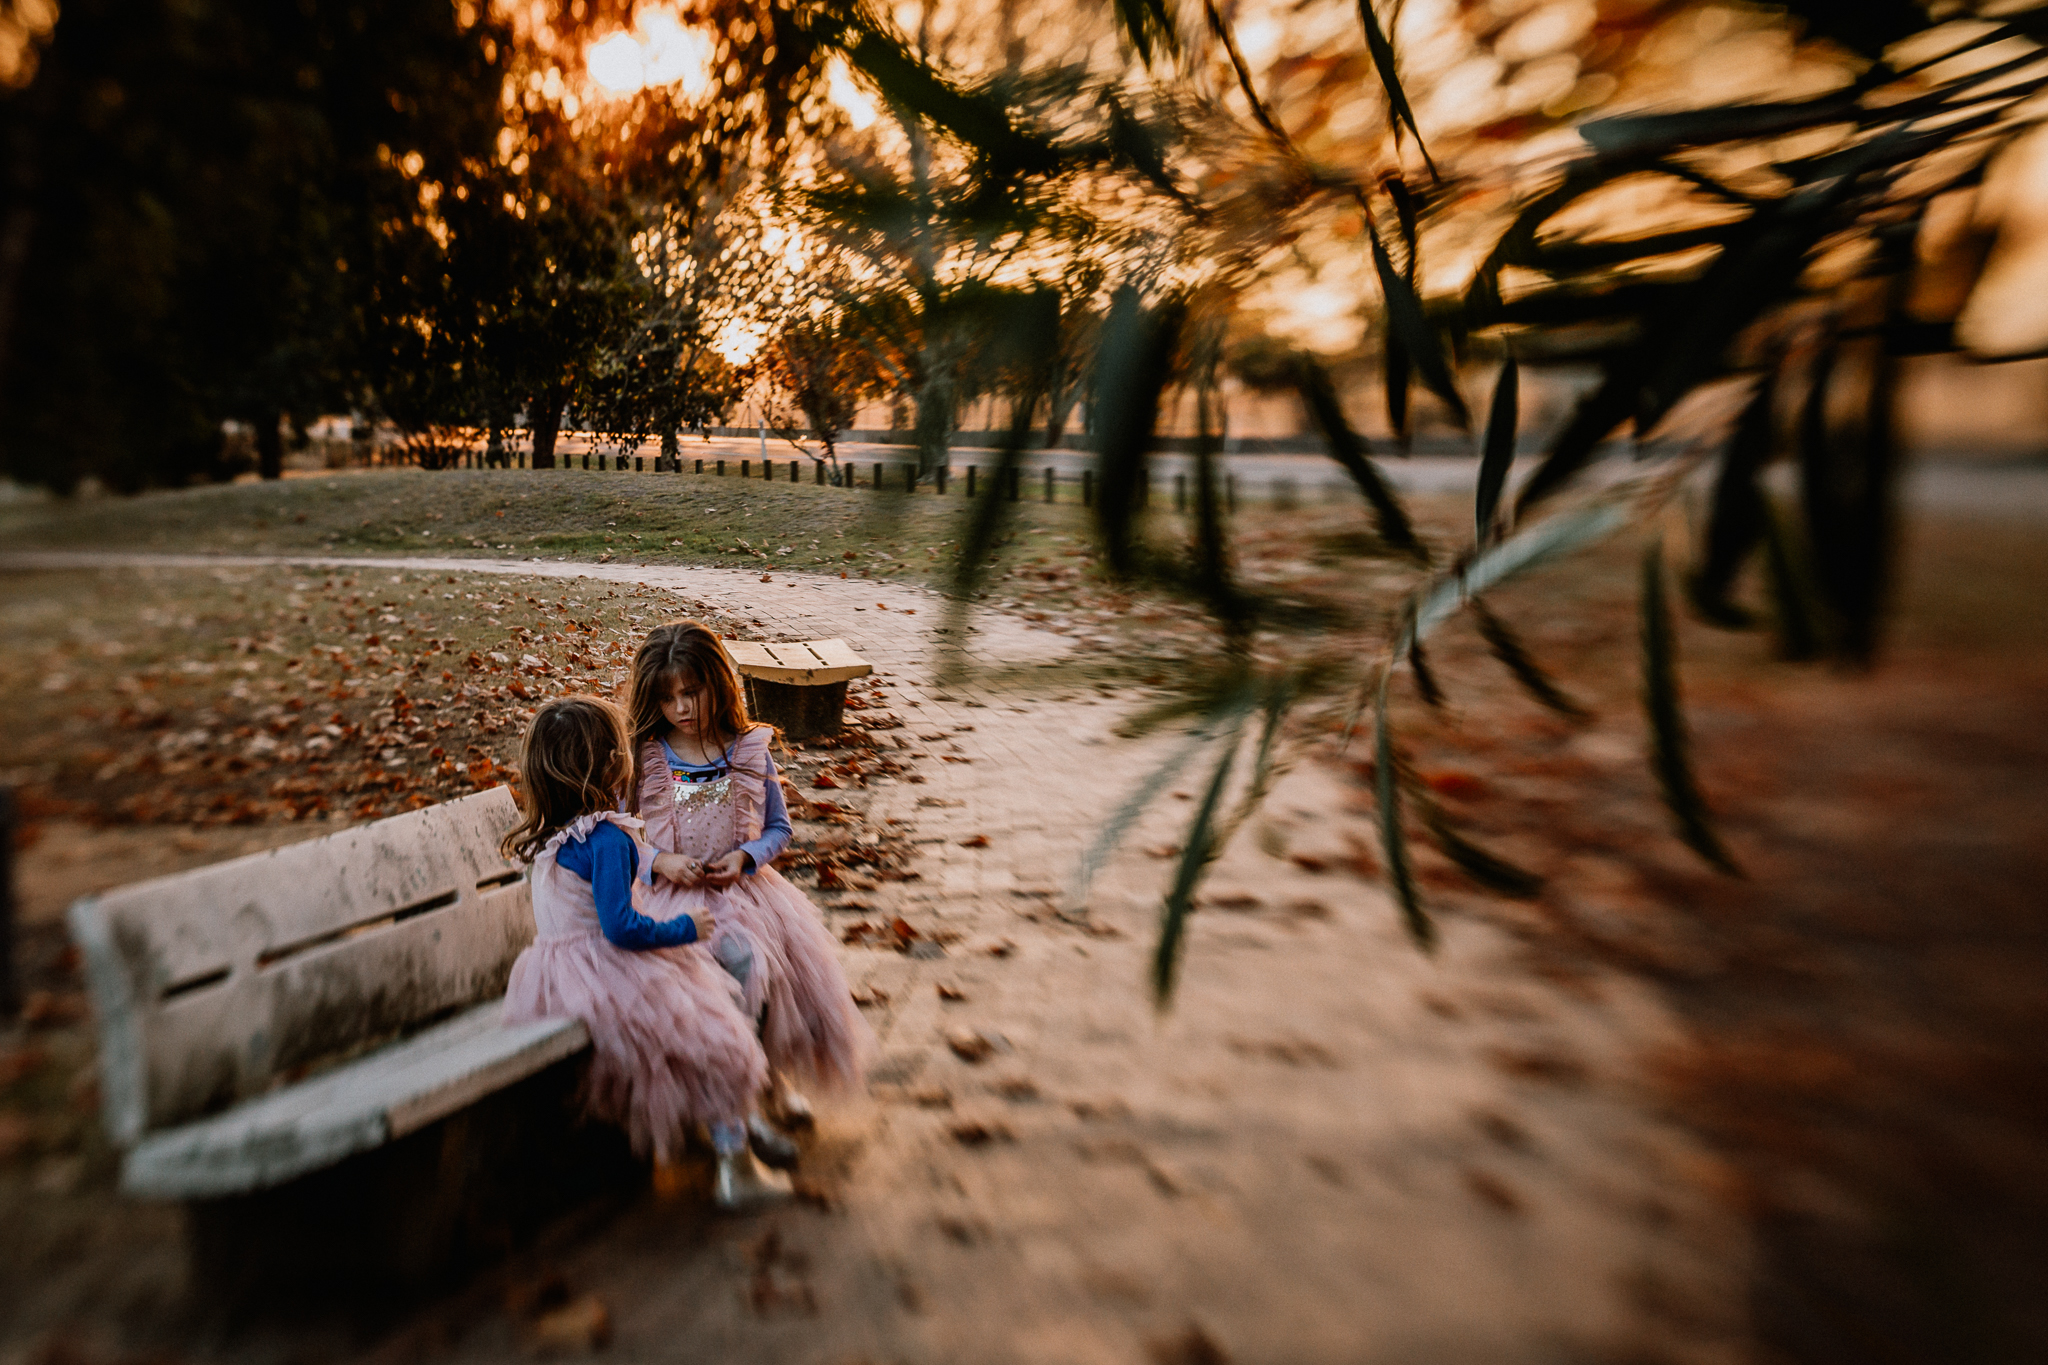 Haweksbury family lifestyle photography, kylie purtell photos and film-14.jpg